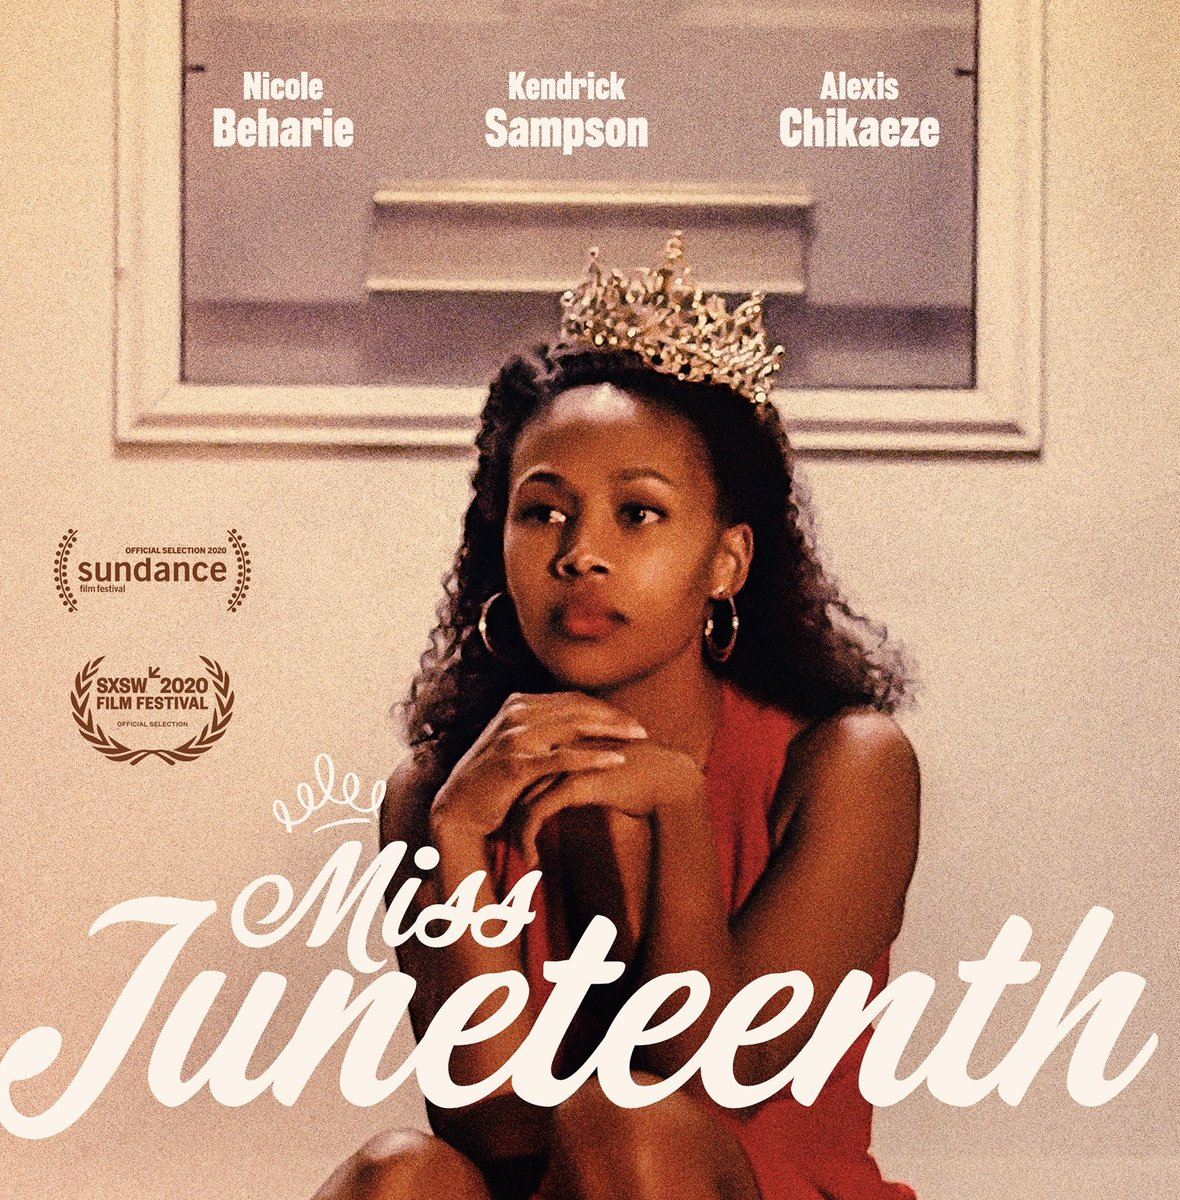 The serendipity of a Black woman writing and directing a debut film, starring a brilliant, underused Black actress, with a title and premise that the world is googling, and releasing it on this week's anniversary, with key art of a crowned Black woman  is honestly ancestral.